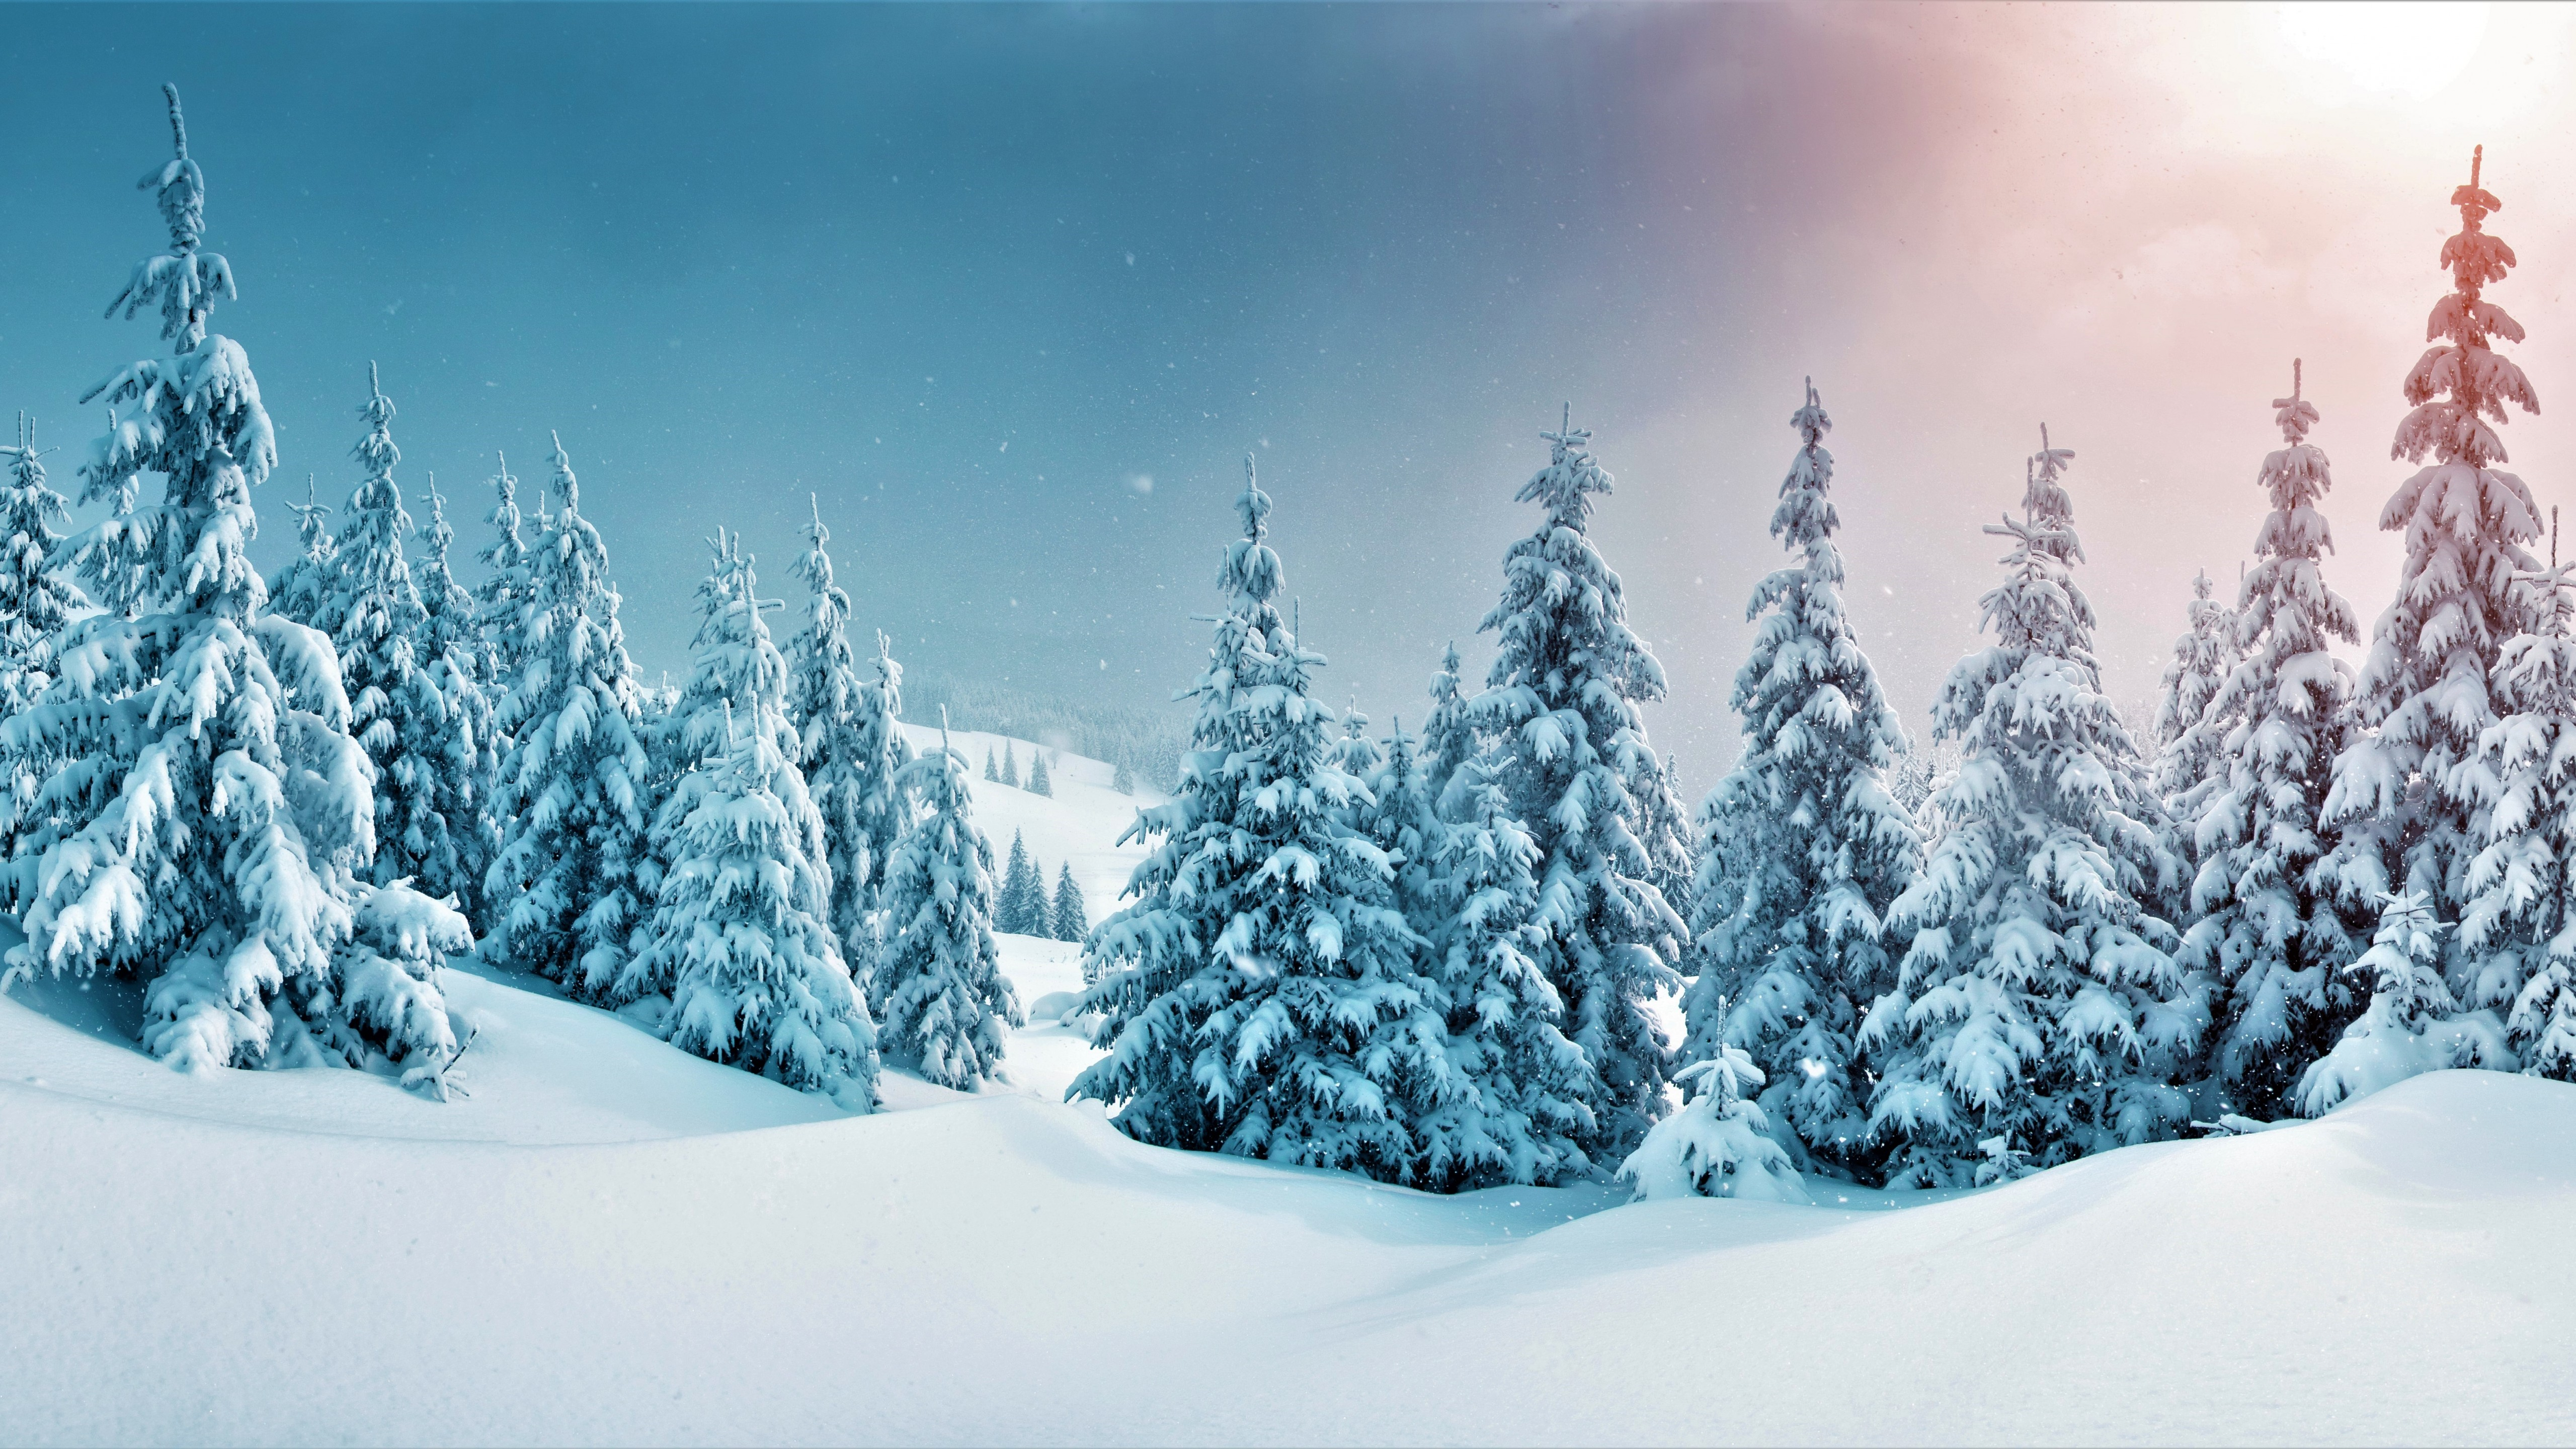 Wallpaper Pine trees in snowy forest